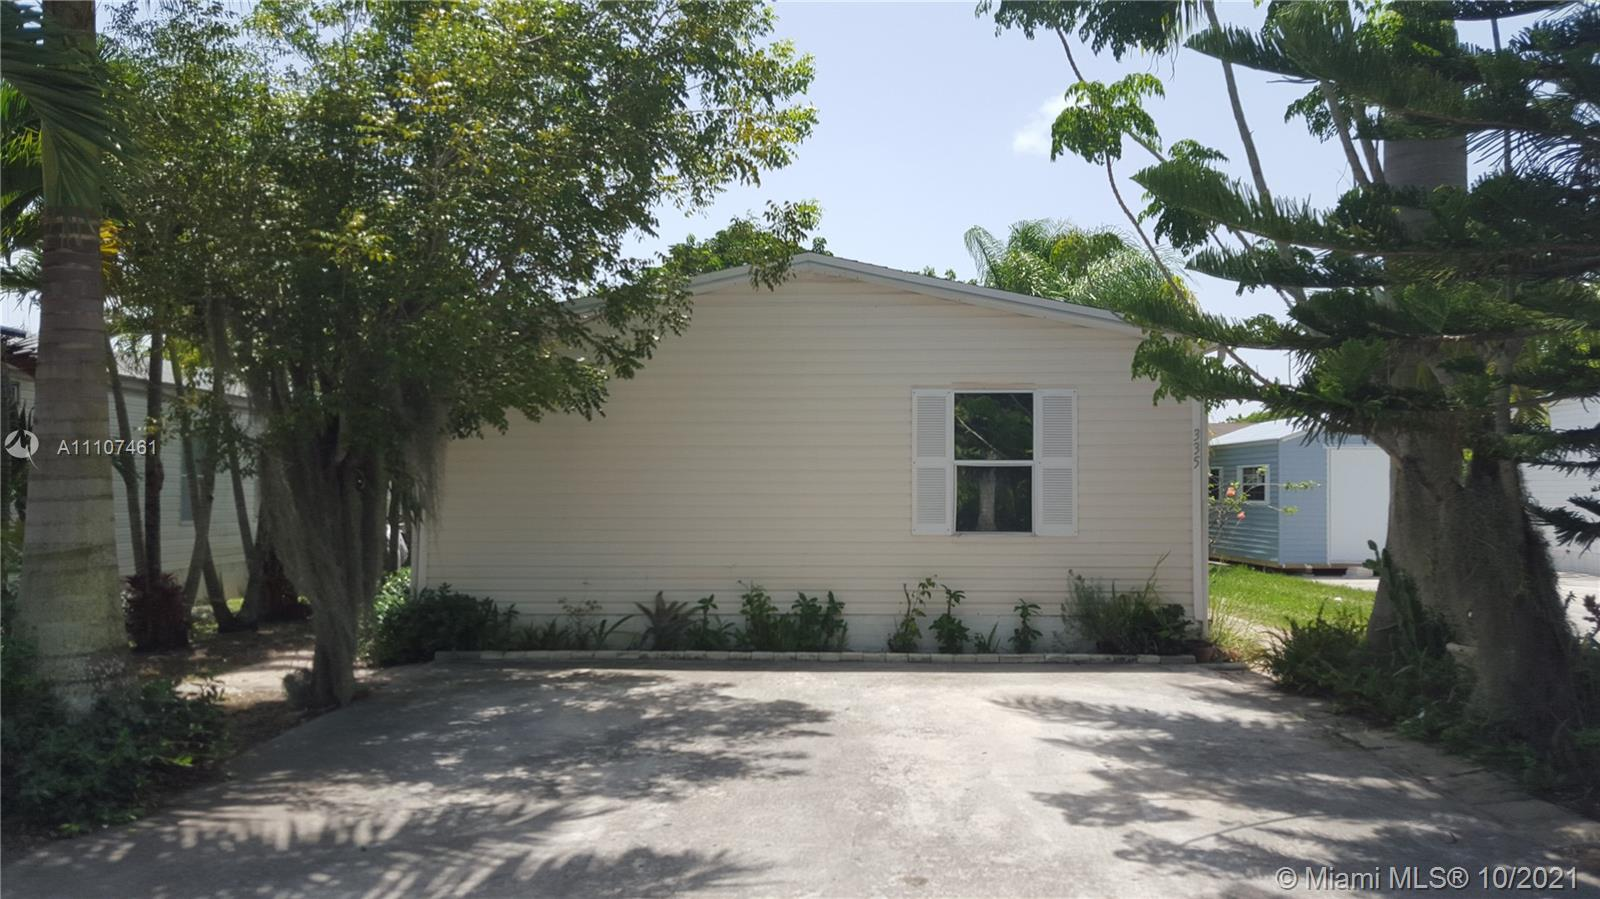 3 BEDROOM 2 BATH MANUFACTURED HOME IN AMERICANA VILLAGE. UNIT IS TILED THROUGHOUT, UPDATED KITCHEN CABINETS WITH GRANITE COUNTERTOPS. SALE INCLUDES THE MANUFACTURED HOME AND THE LAND. GATED COMMUNITY WITH SECURITY, CLUB HOUSE, POOL AND MORE.